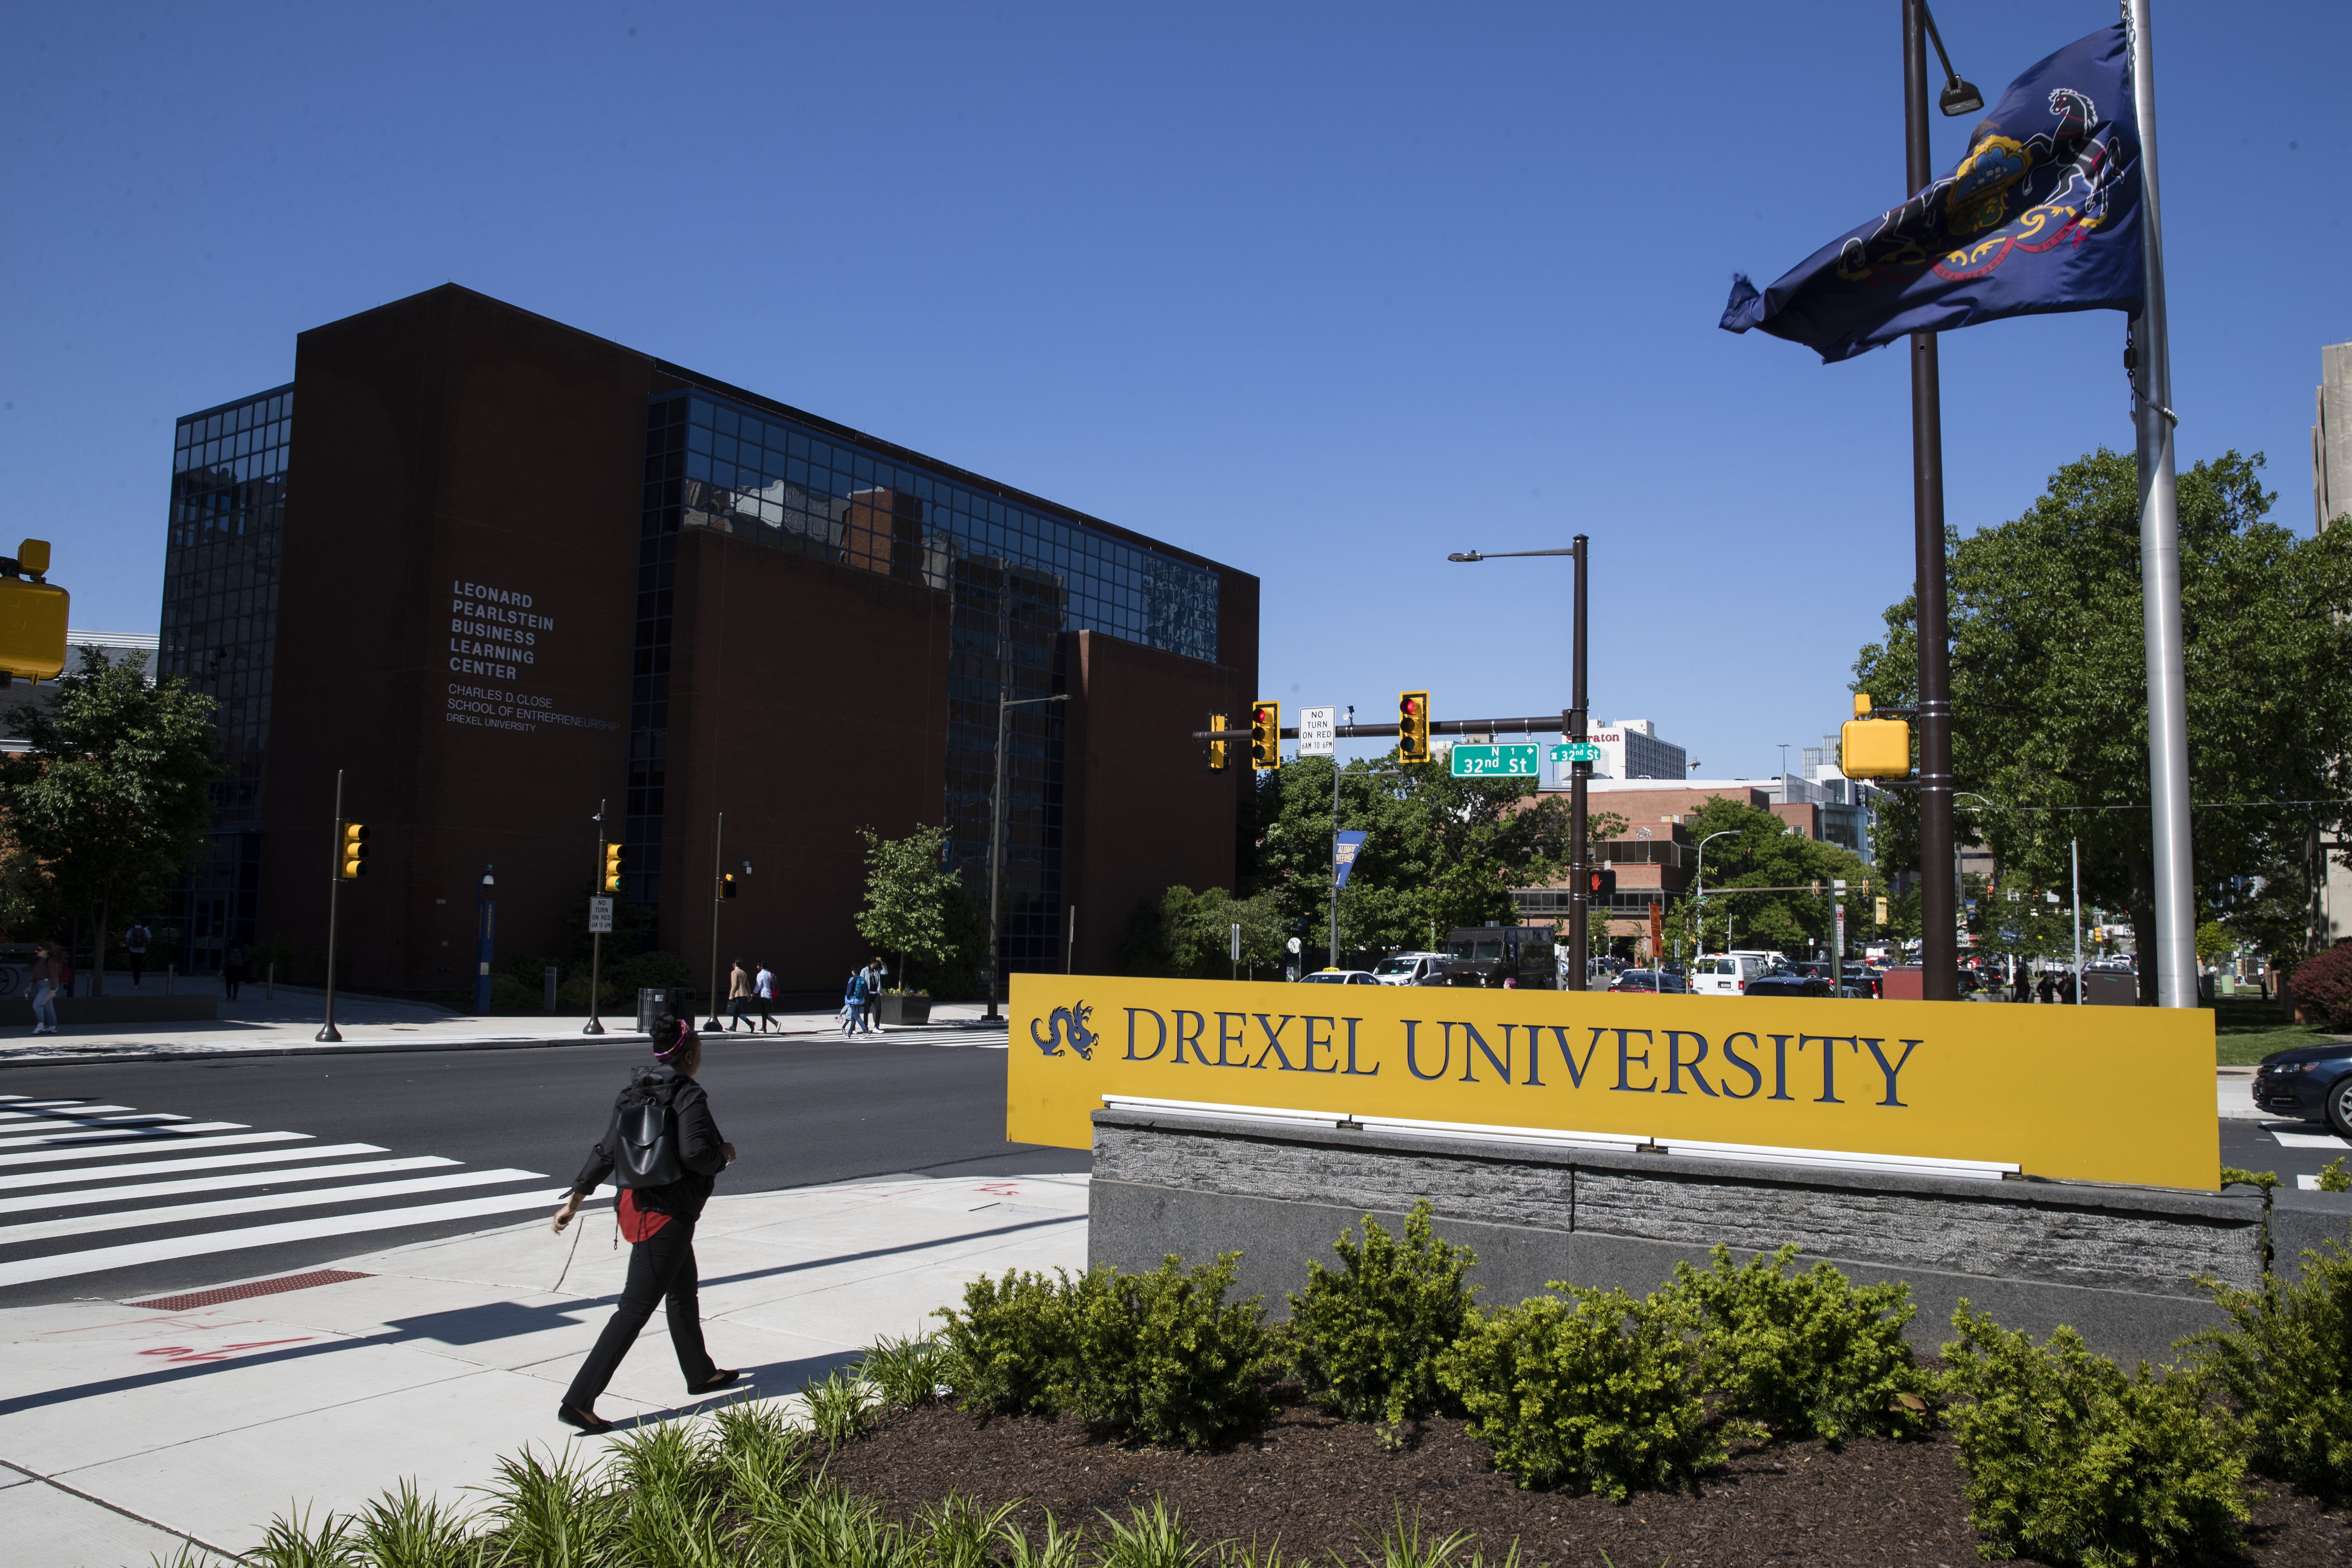 Drexel University in Philadelphia. Students at more than 25 universities are filing lawsuits demanding tuition refunds from their schools after finding that the online classes they are being offered do not match up to the classroom experience. Grainger Rickenbaker, a freshman who filed a class action lawsuit against Drexel University in Philadelphia, said the online classes heu2019s been taking are poor substitutes for classroom learning. File Photo: AP